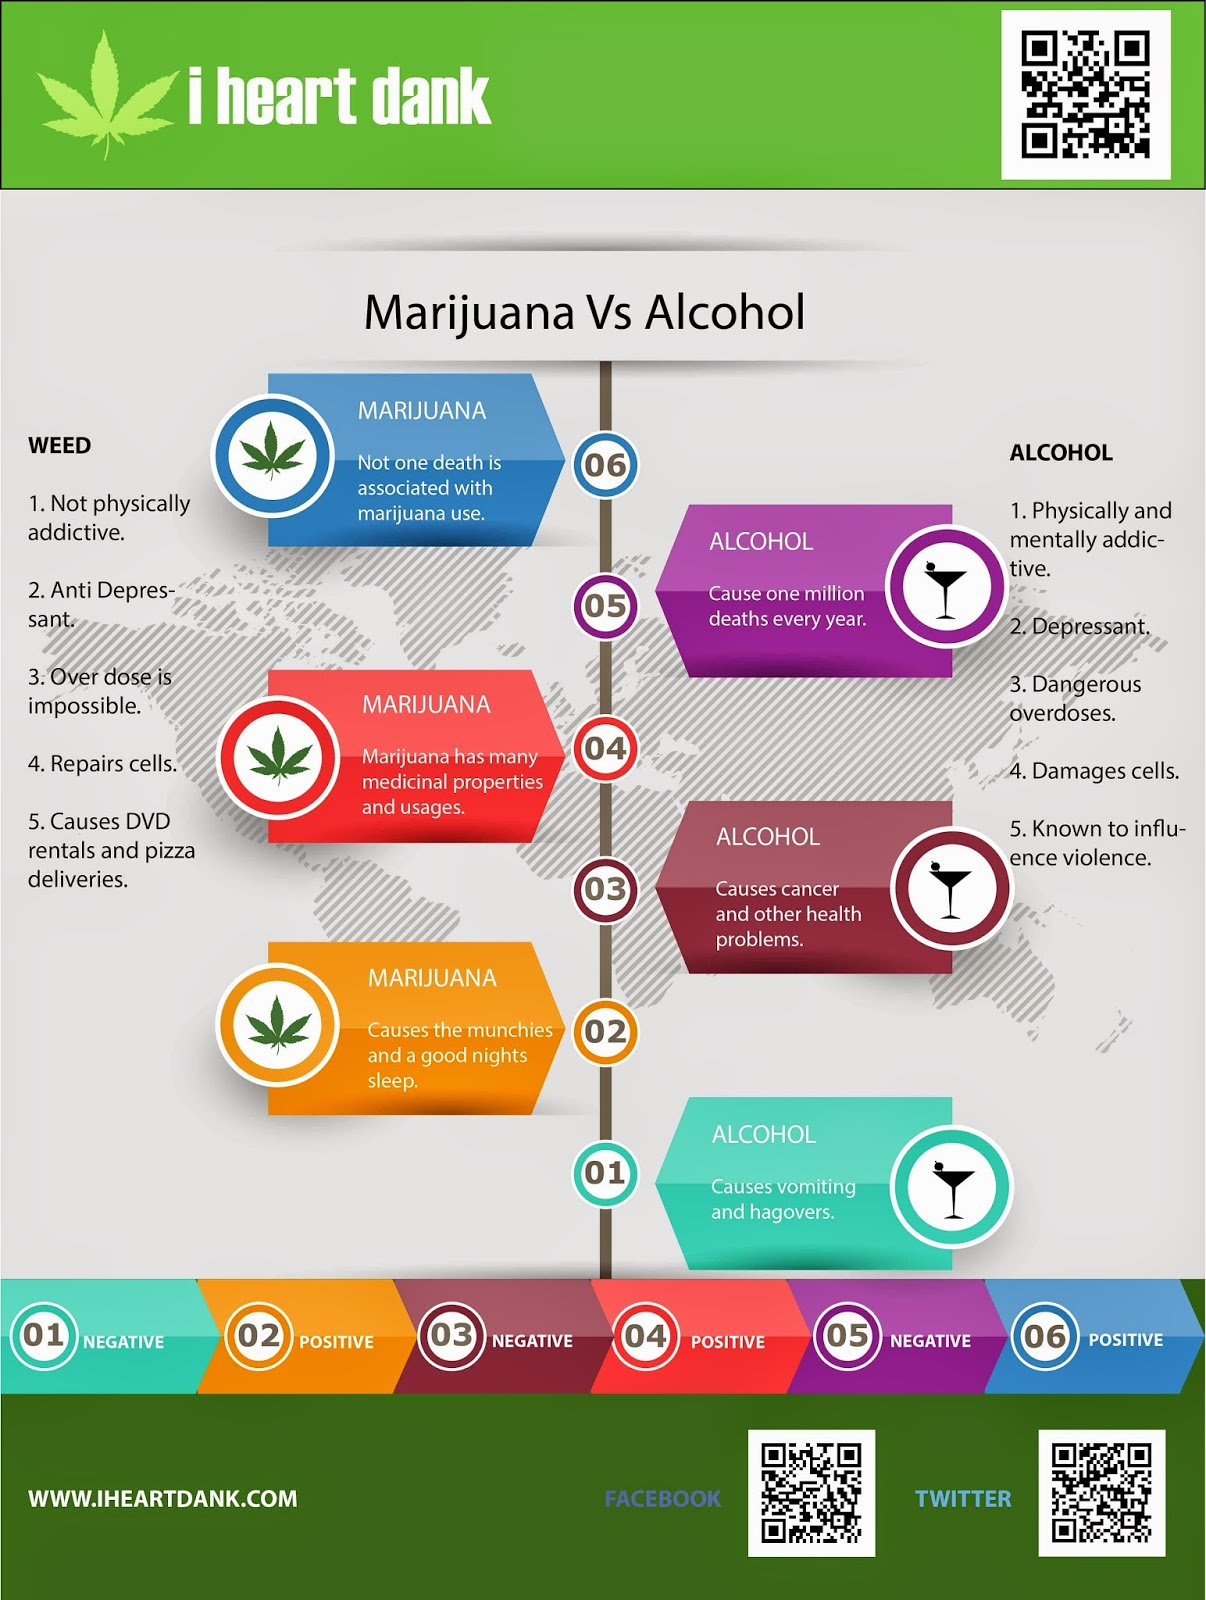 marijuana vs alcohol in the united Marijuana use is not the national institute on alcohol abuse and alcoholism estimates that 25-30% of violent crimes in the united states are linked to the use of alcohol according to a report from the us dept of justice, that translates to millions of alcohol-related violent crimes per year by contrast, the government does.